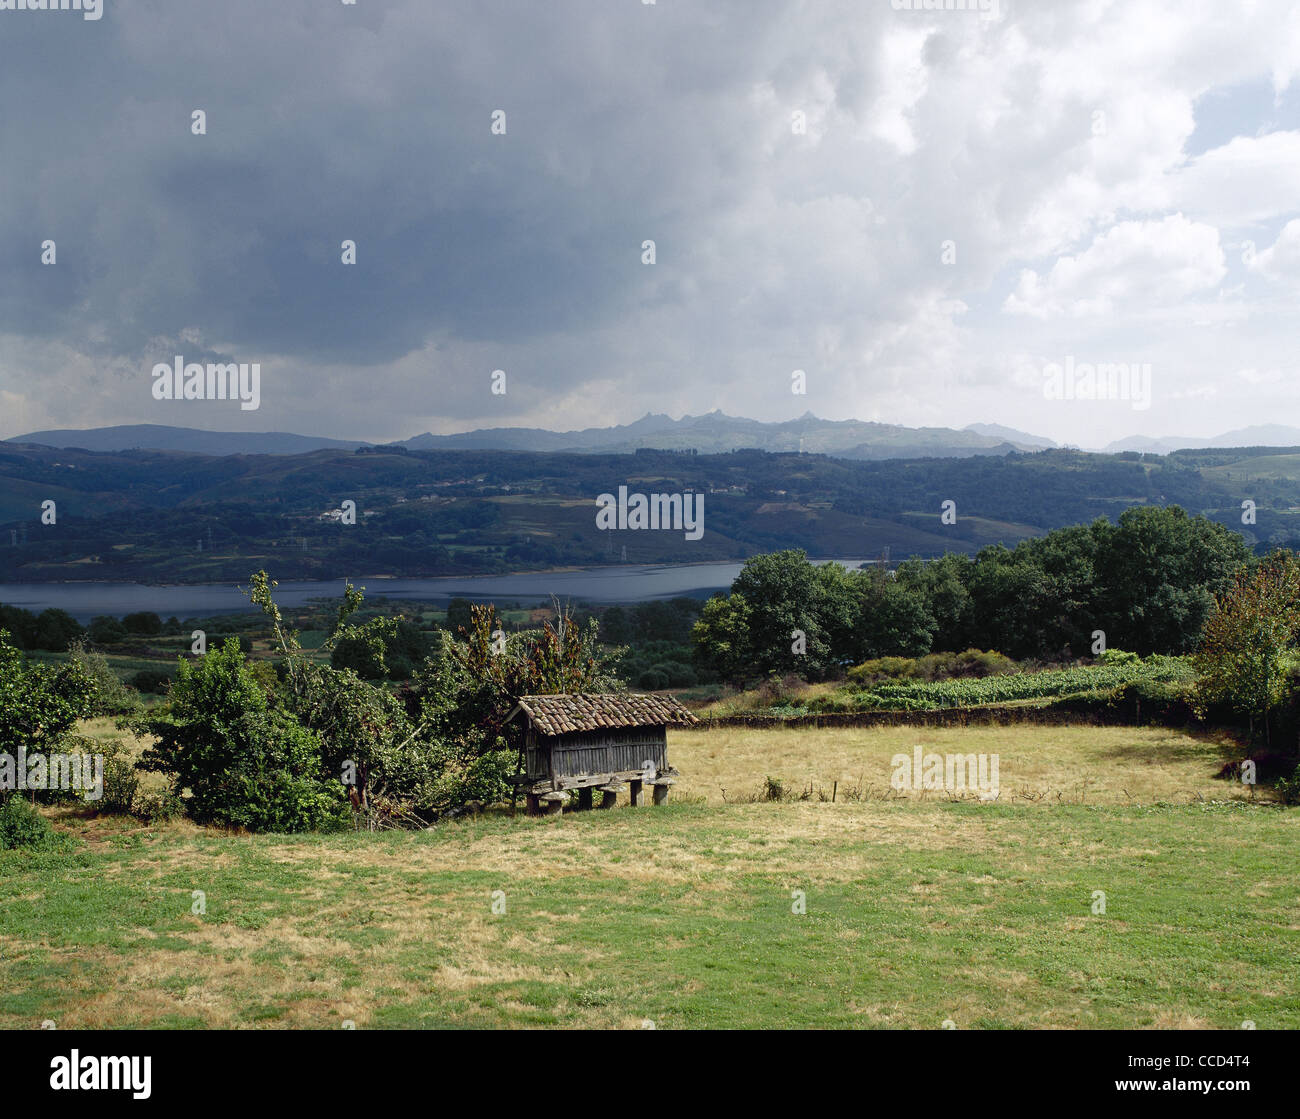 Spain. Galicia. Overview of a typical galician landscape with Reservoir Das Conchas in the background. - Stock Image